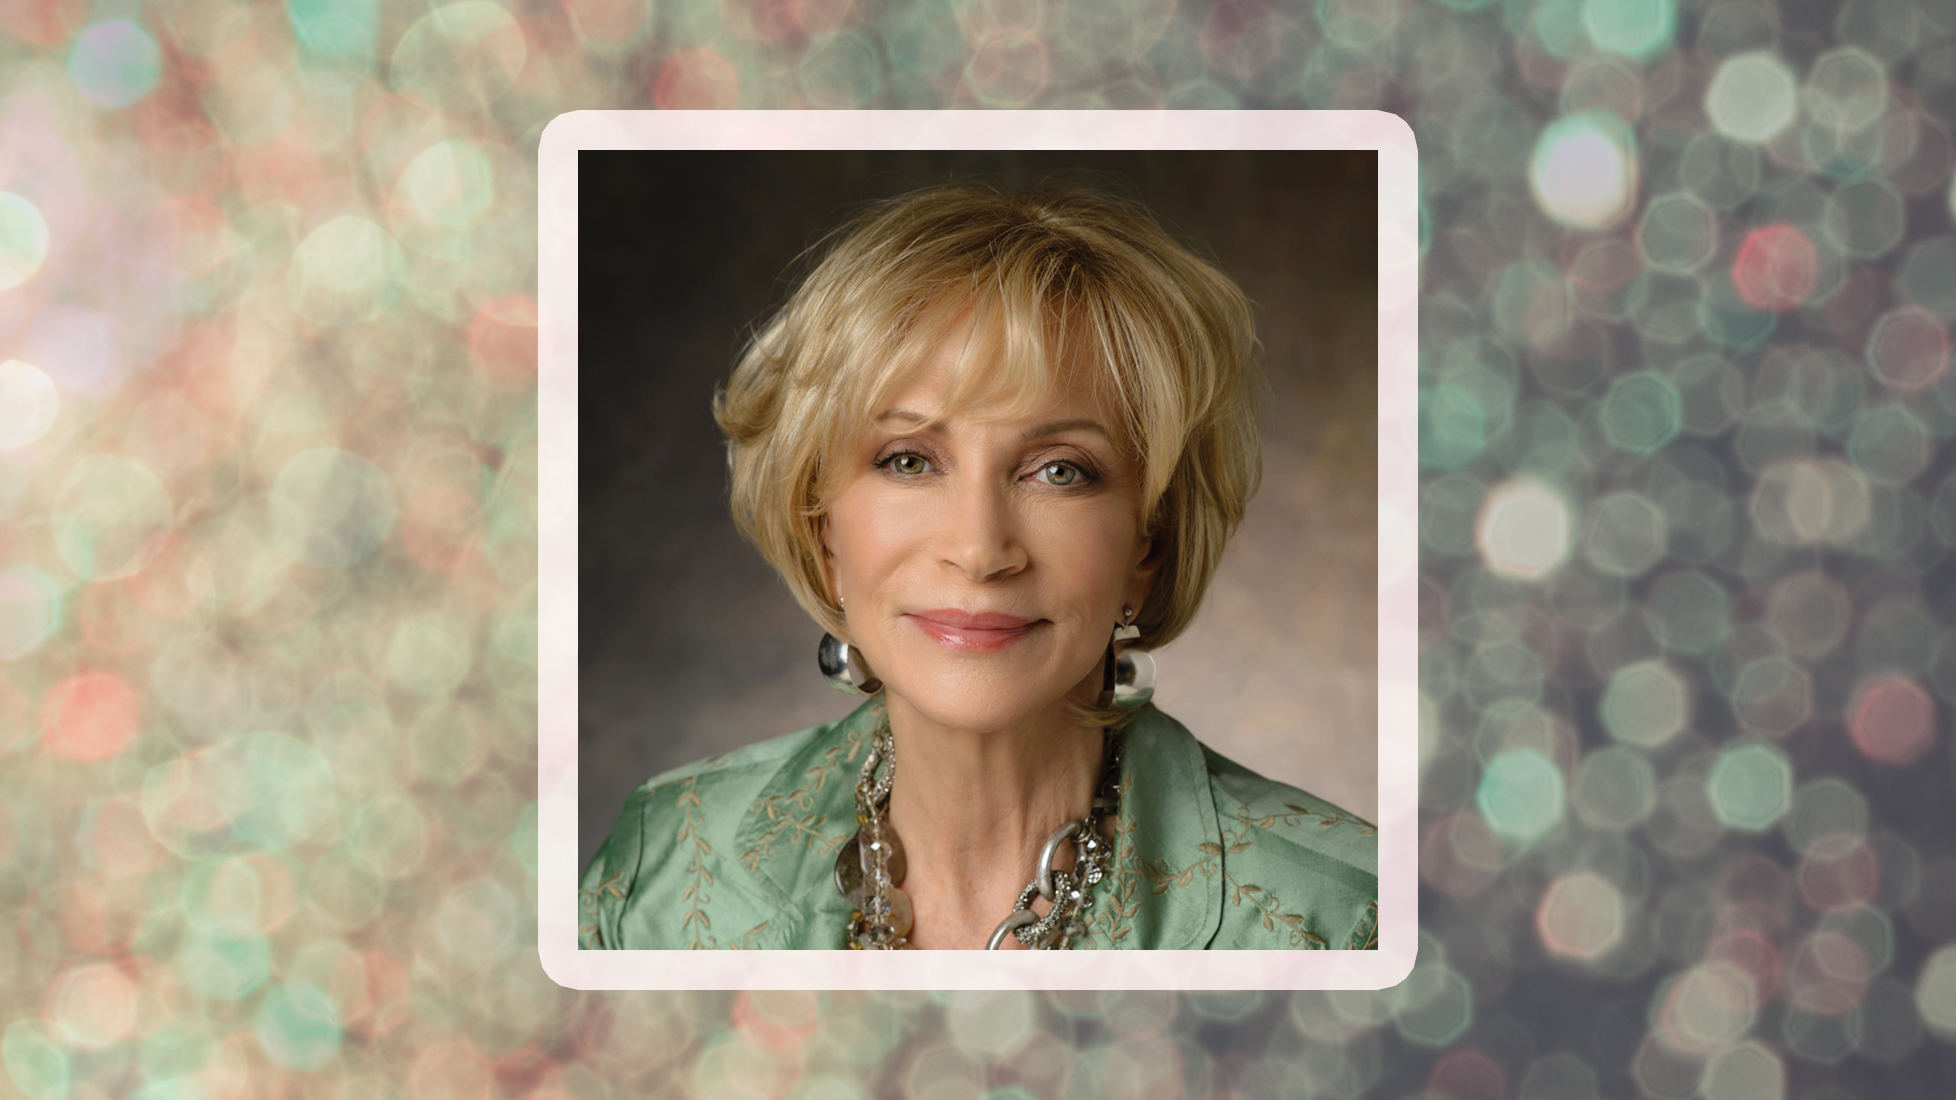 Podcast image of Nancy Hite